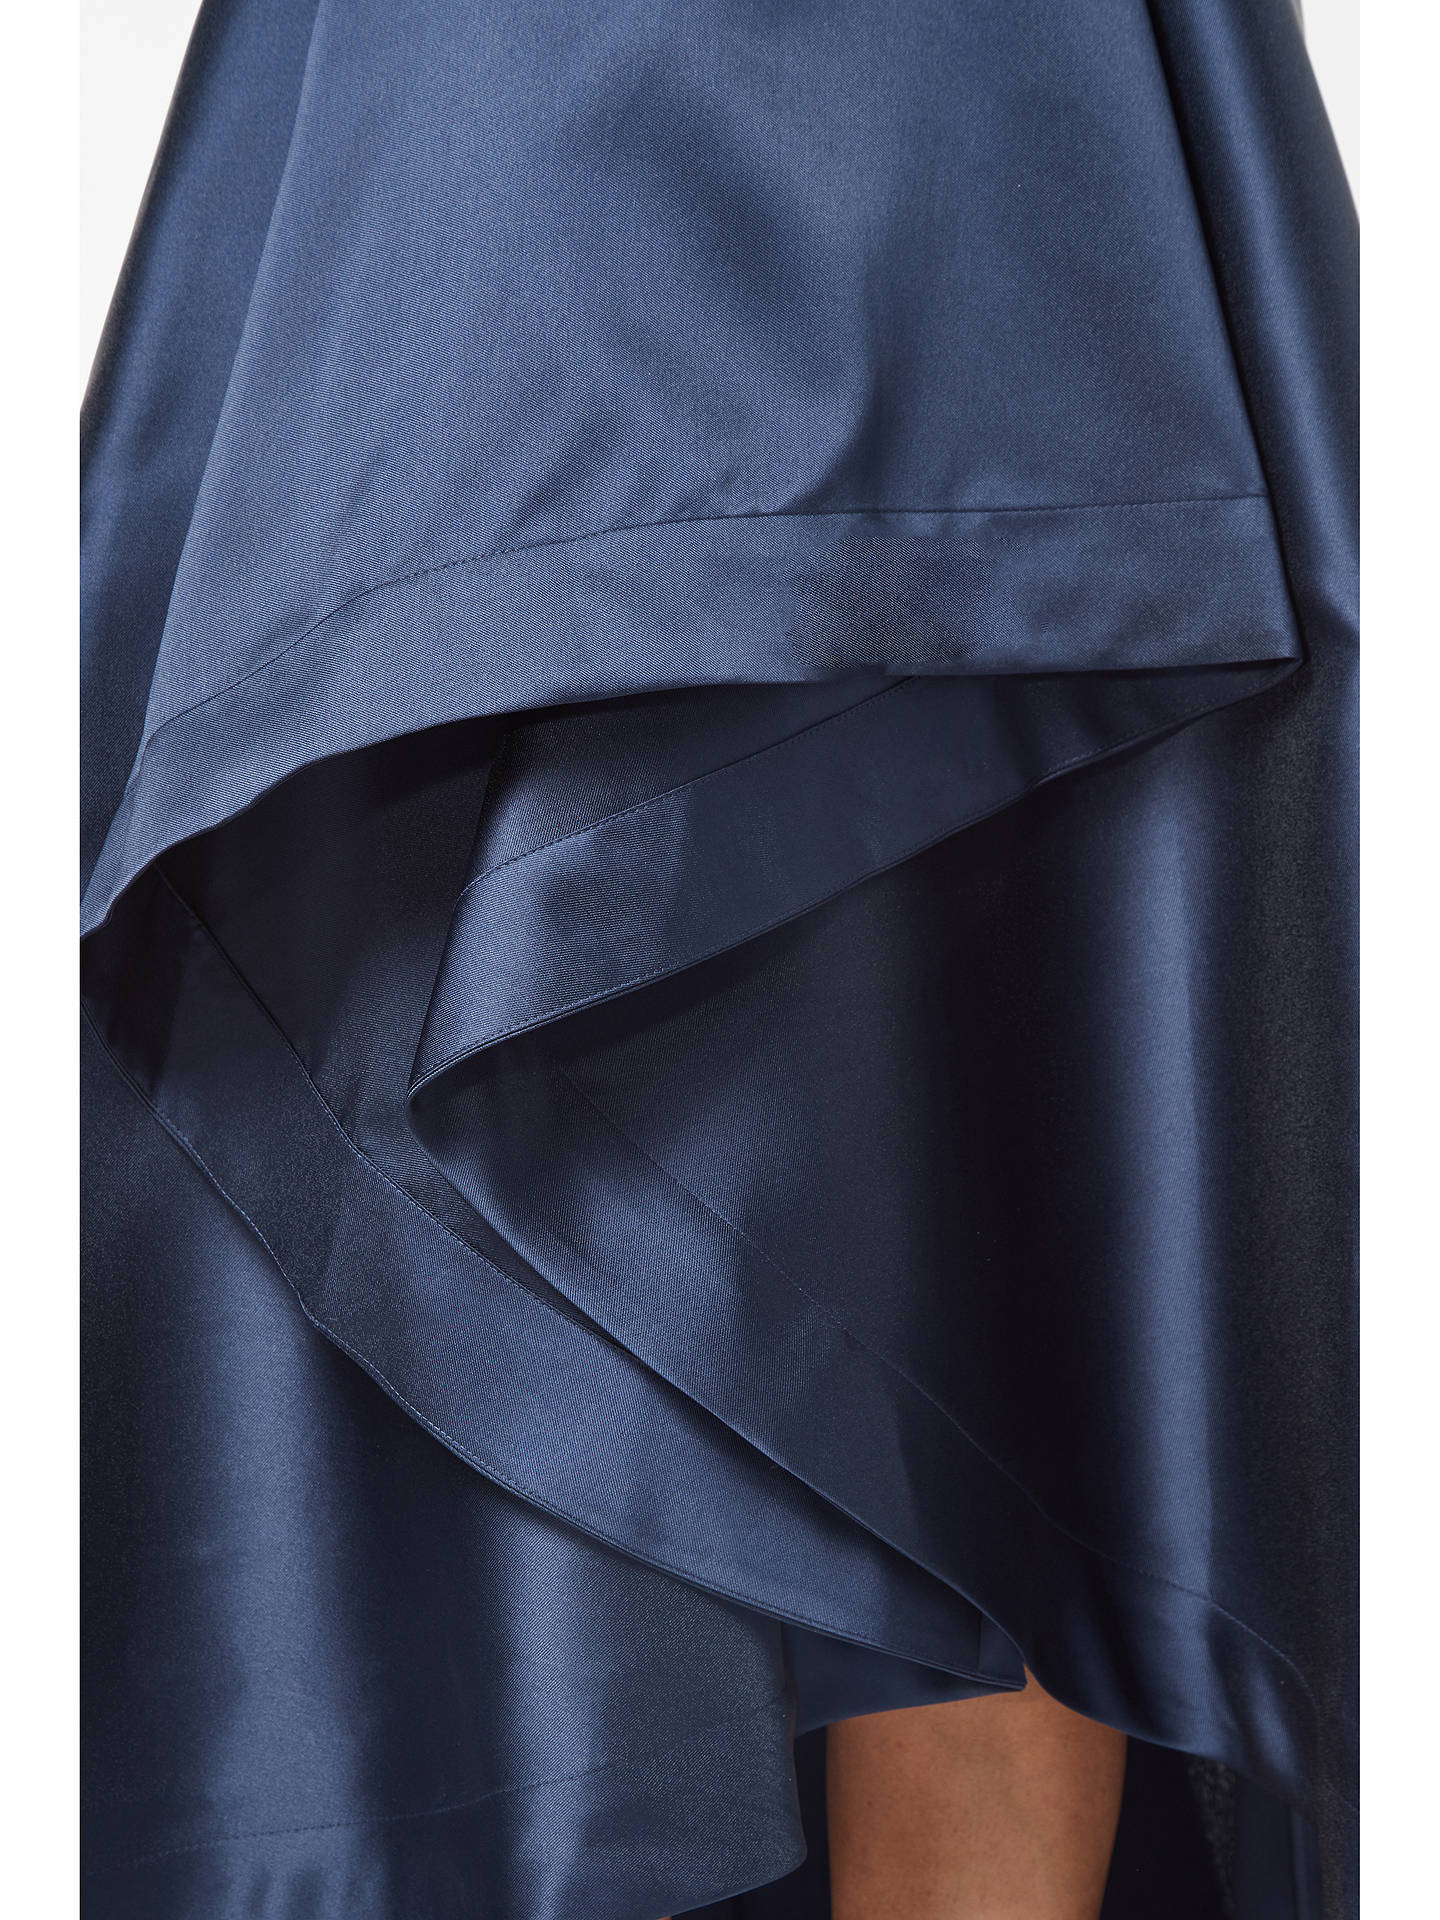 Buy Adrianna Papell Petite Mikado A-Line Tafetta Dress, Midnight, 6 Online at johnlewis.com